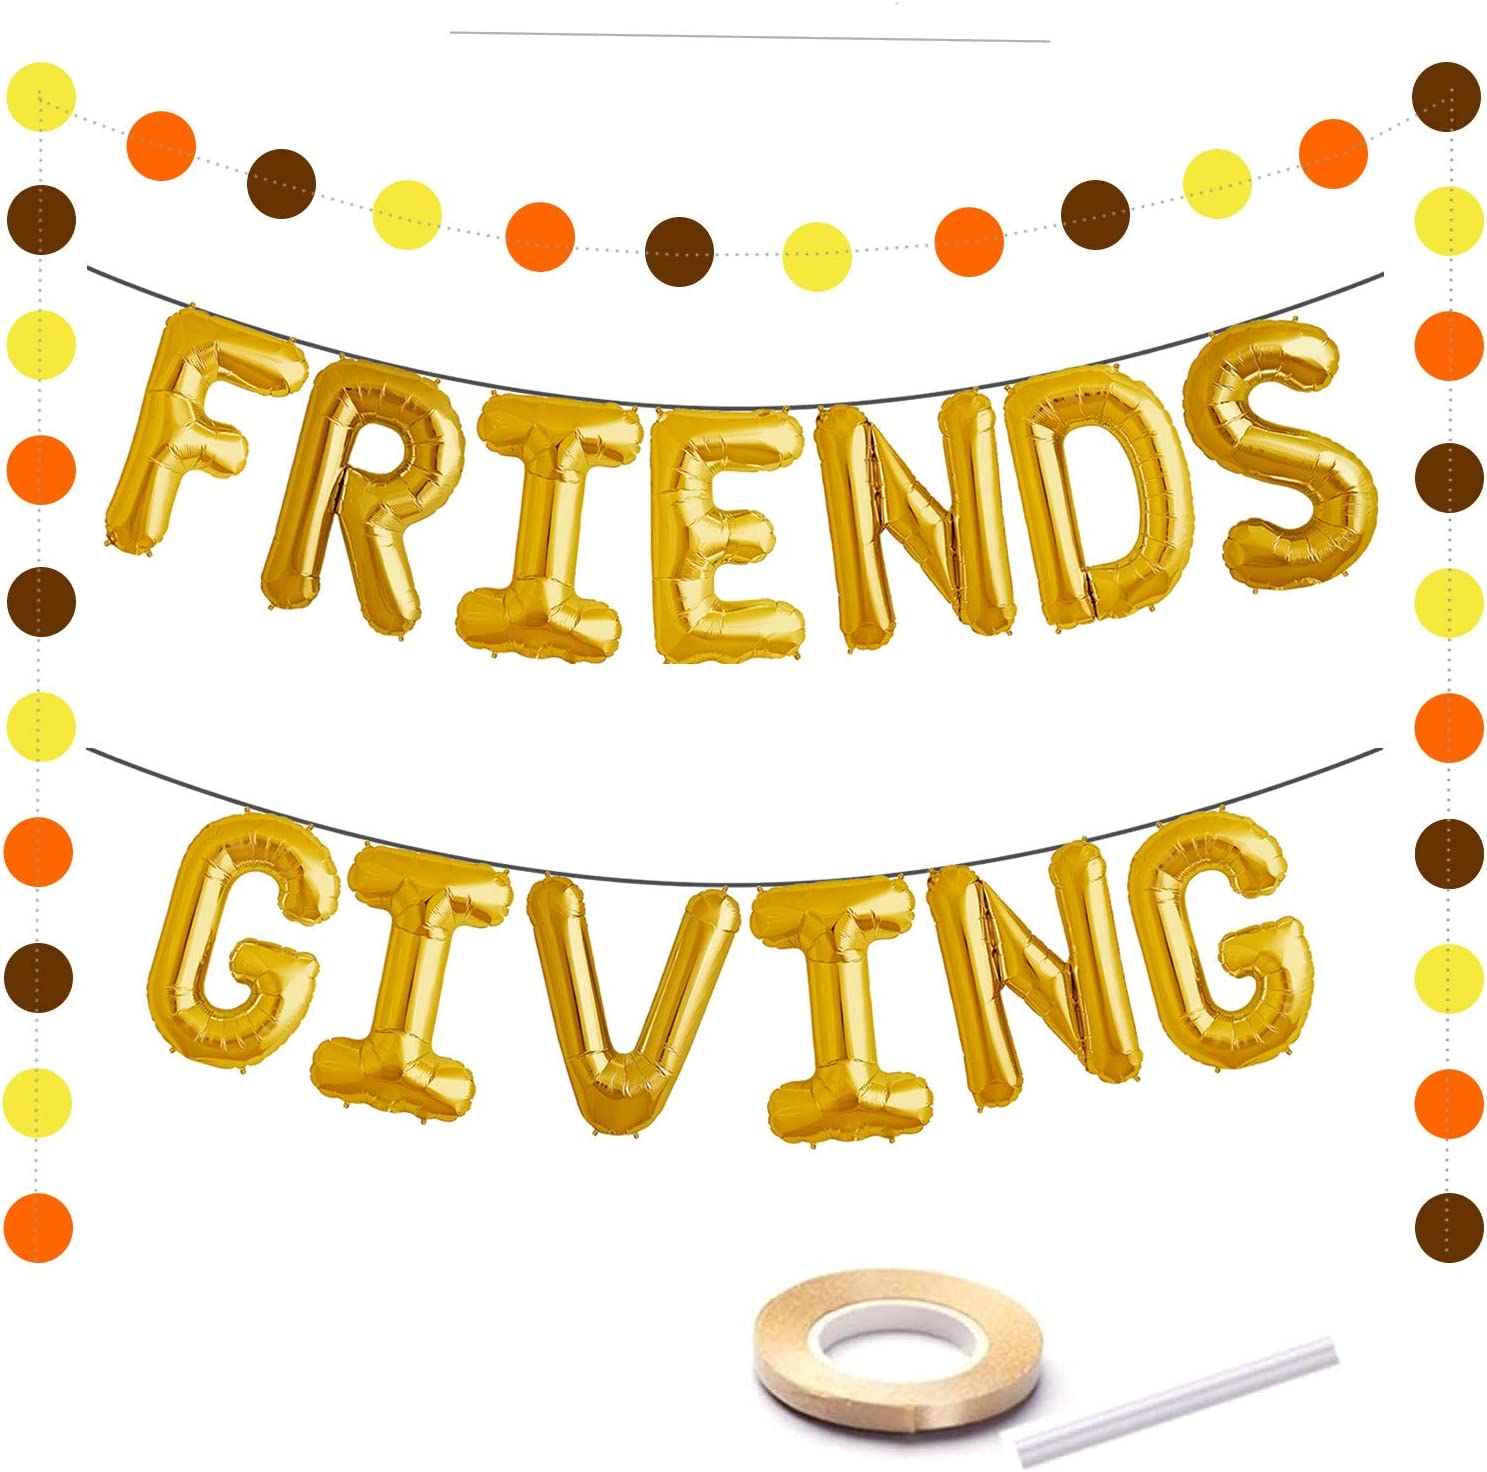 Friends Giving Decoration Gold Foil Letter 16 Inches Tall Balloons Banner Thanksgiving Centerpiece Friends Party Backdrop Fall Decor Circle Dots Garlands…